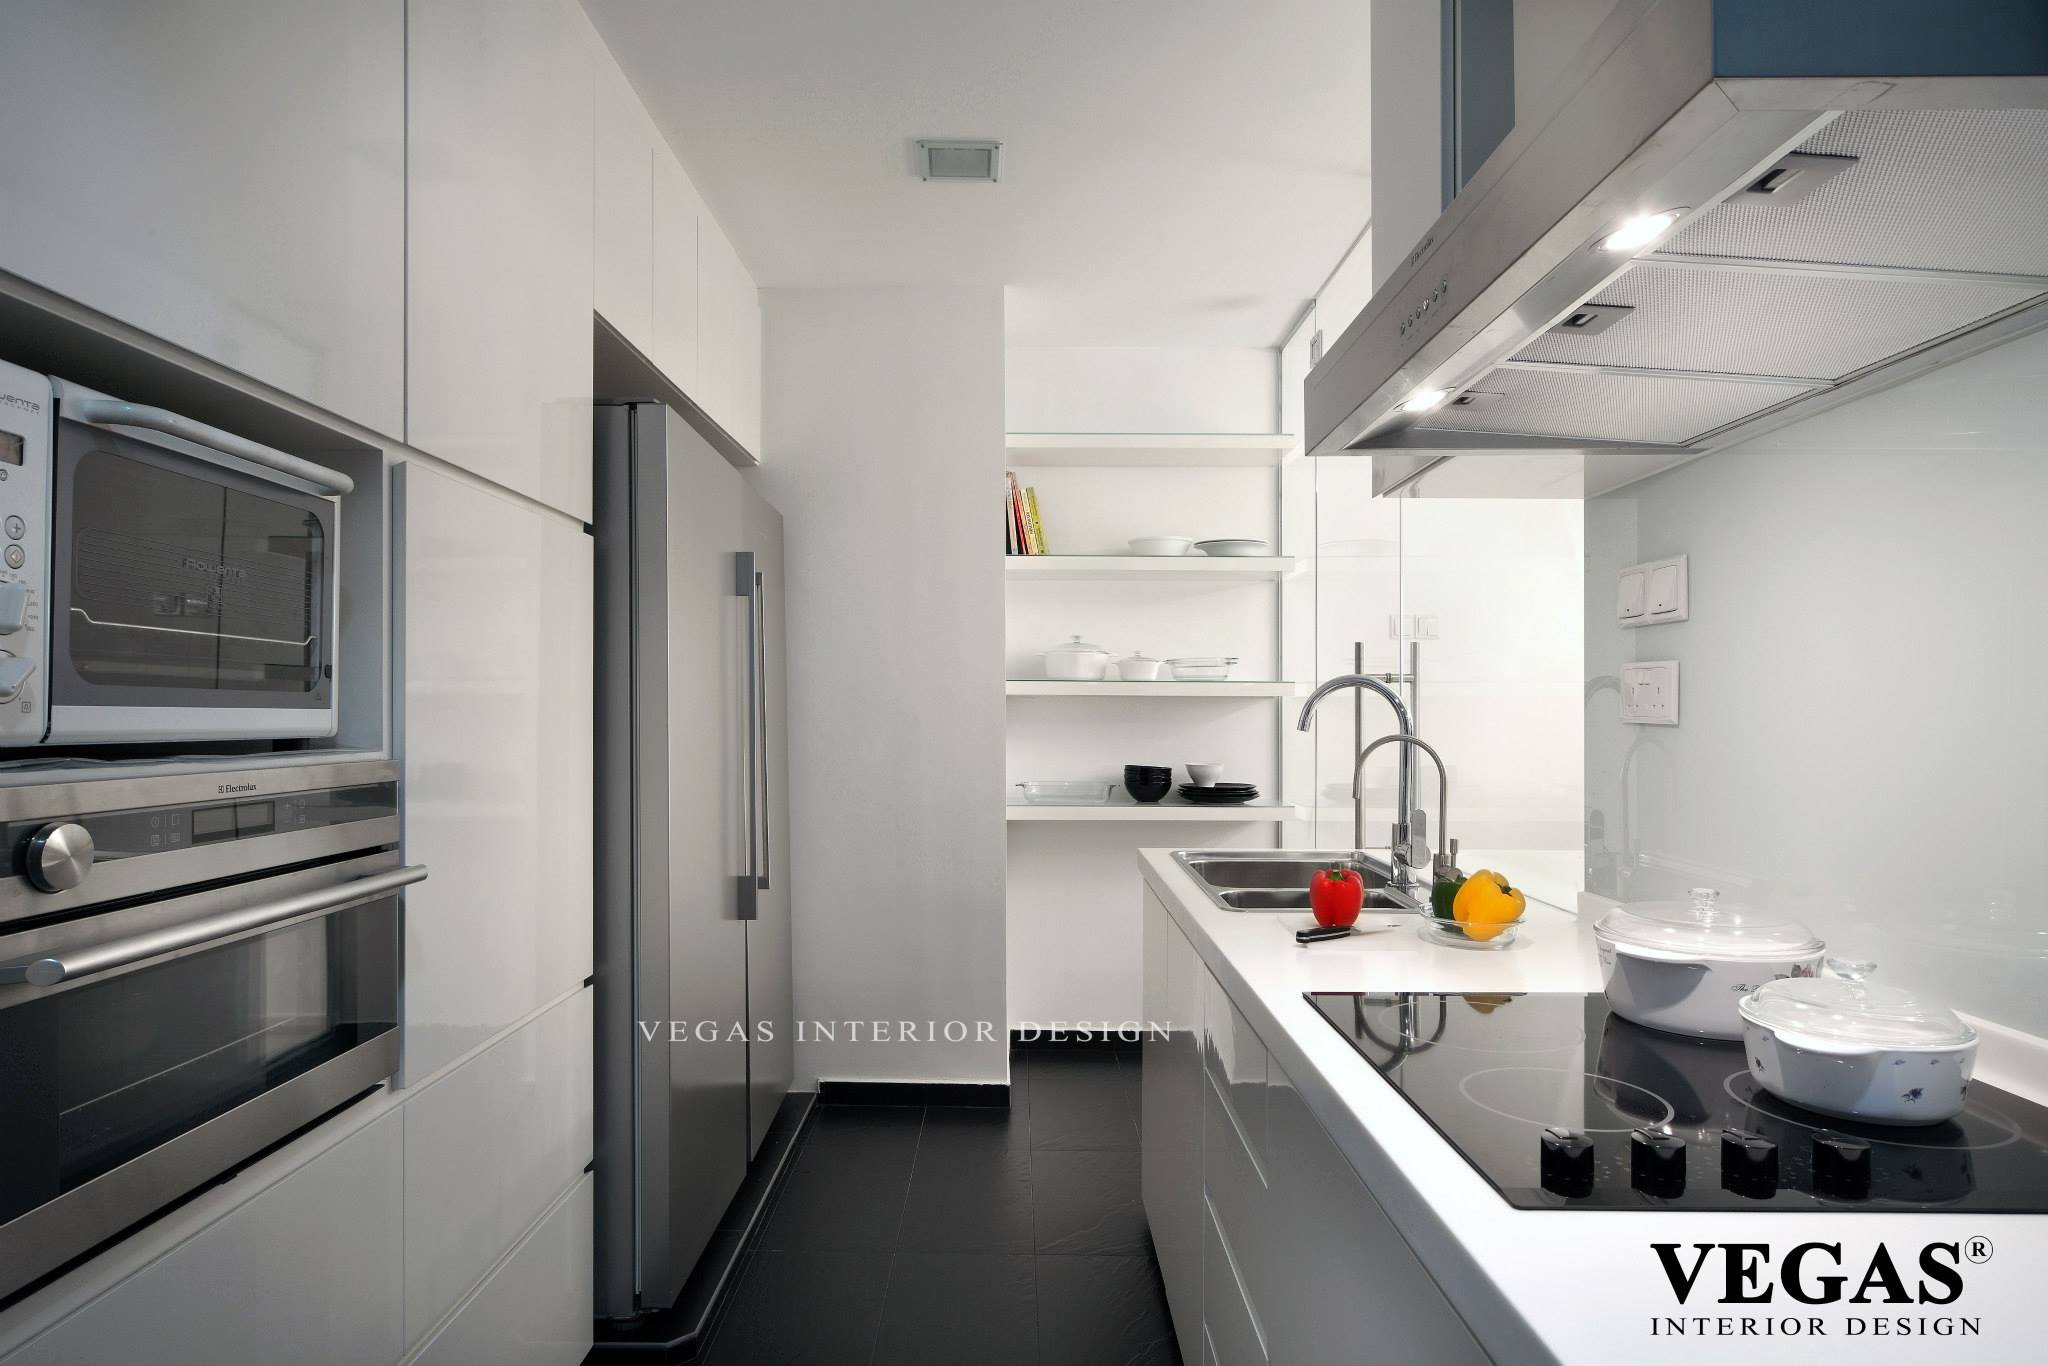 Design Your Kitchen With Style Vegas Interior Design